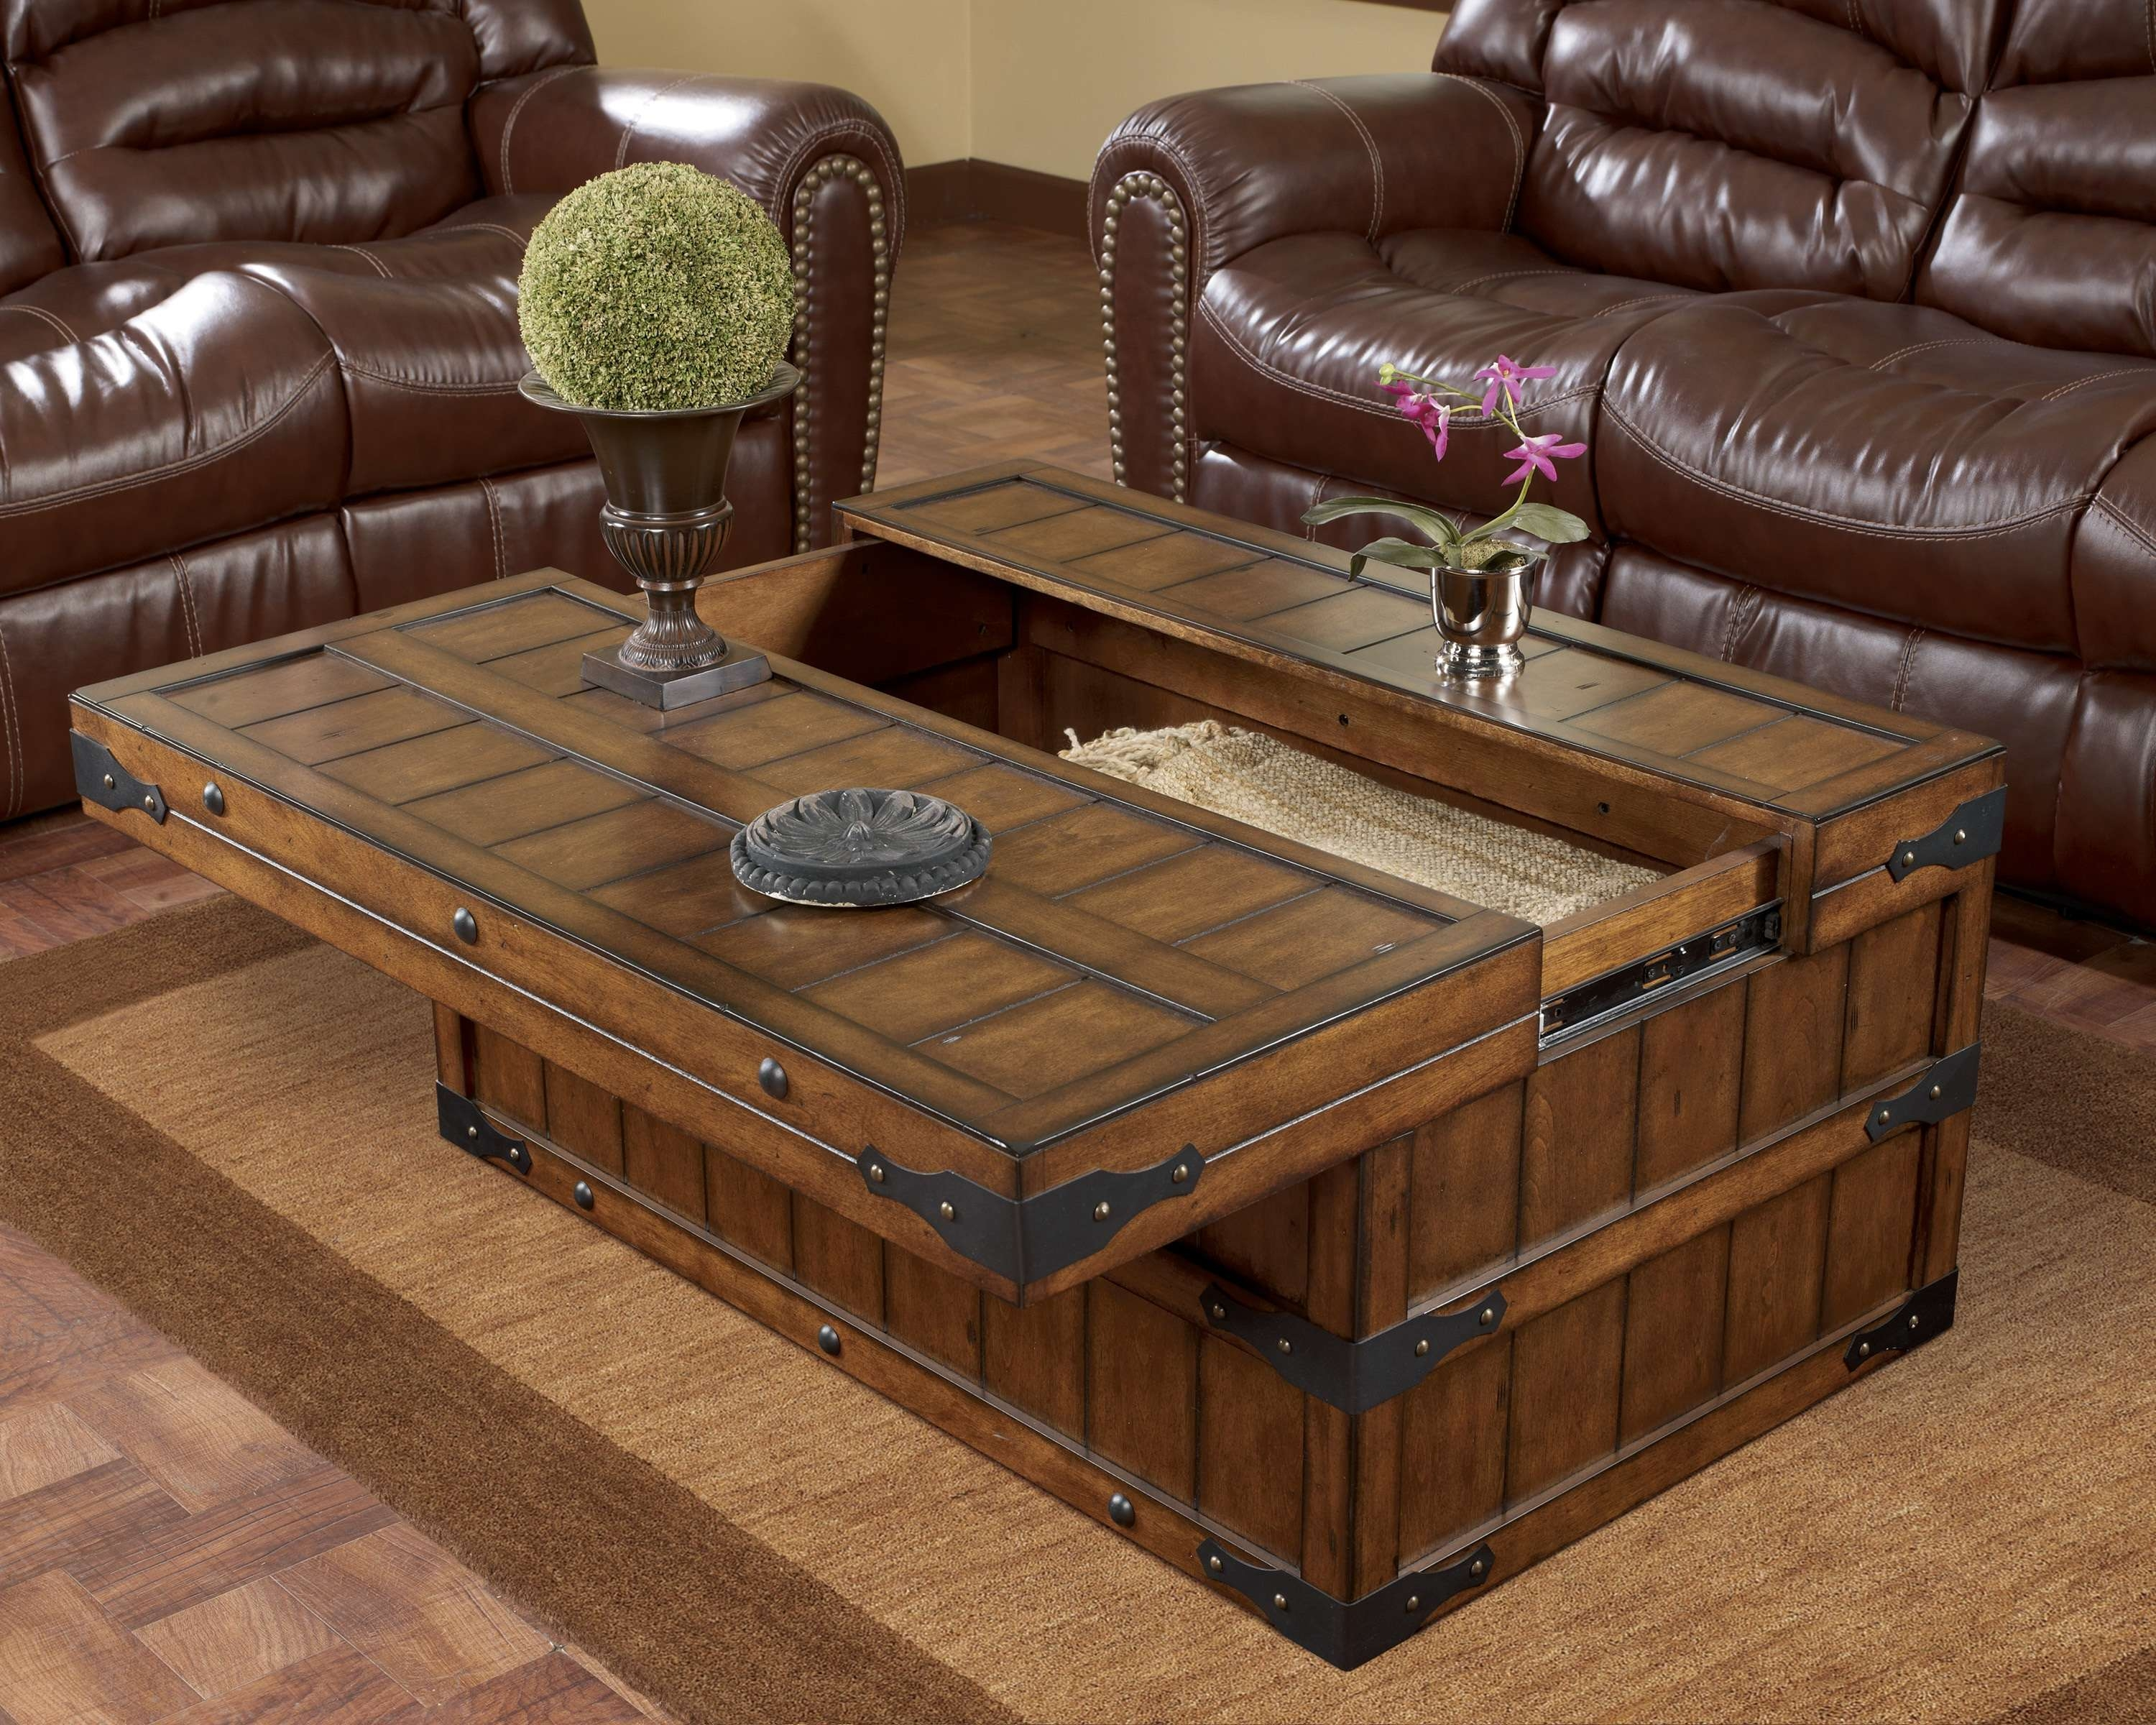 Favorite Hardwood Coffee Tables With Storage Inside Coffee Table : Amazing Unique Round Coffee Tables Square Cocktail (View 11 of 20)